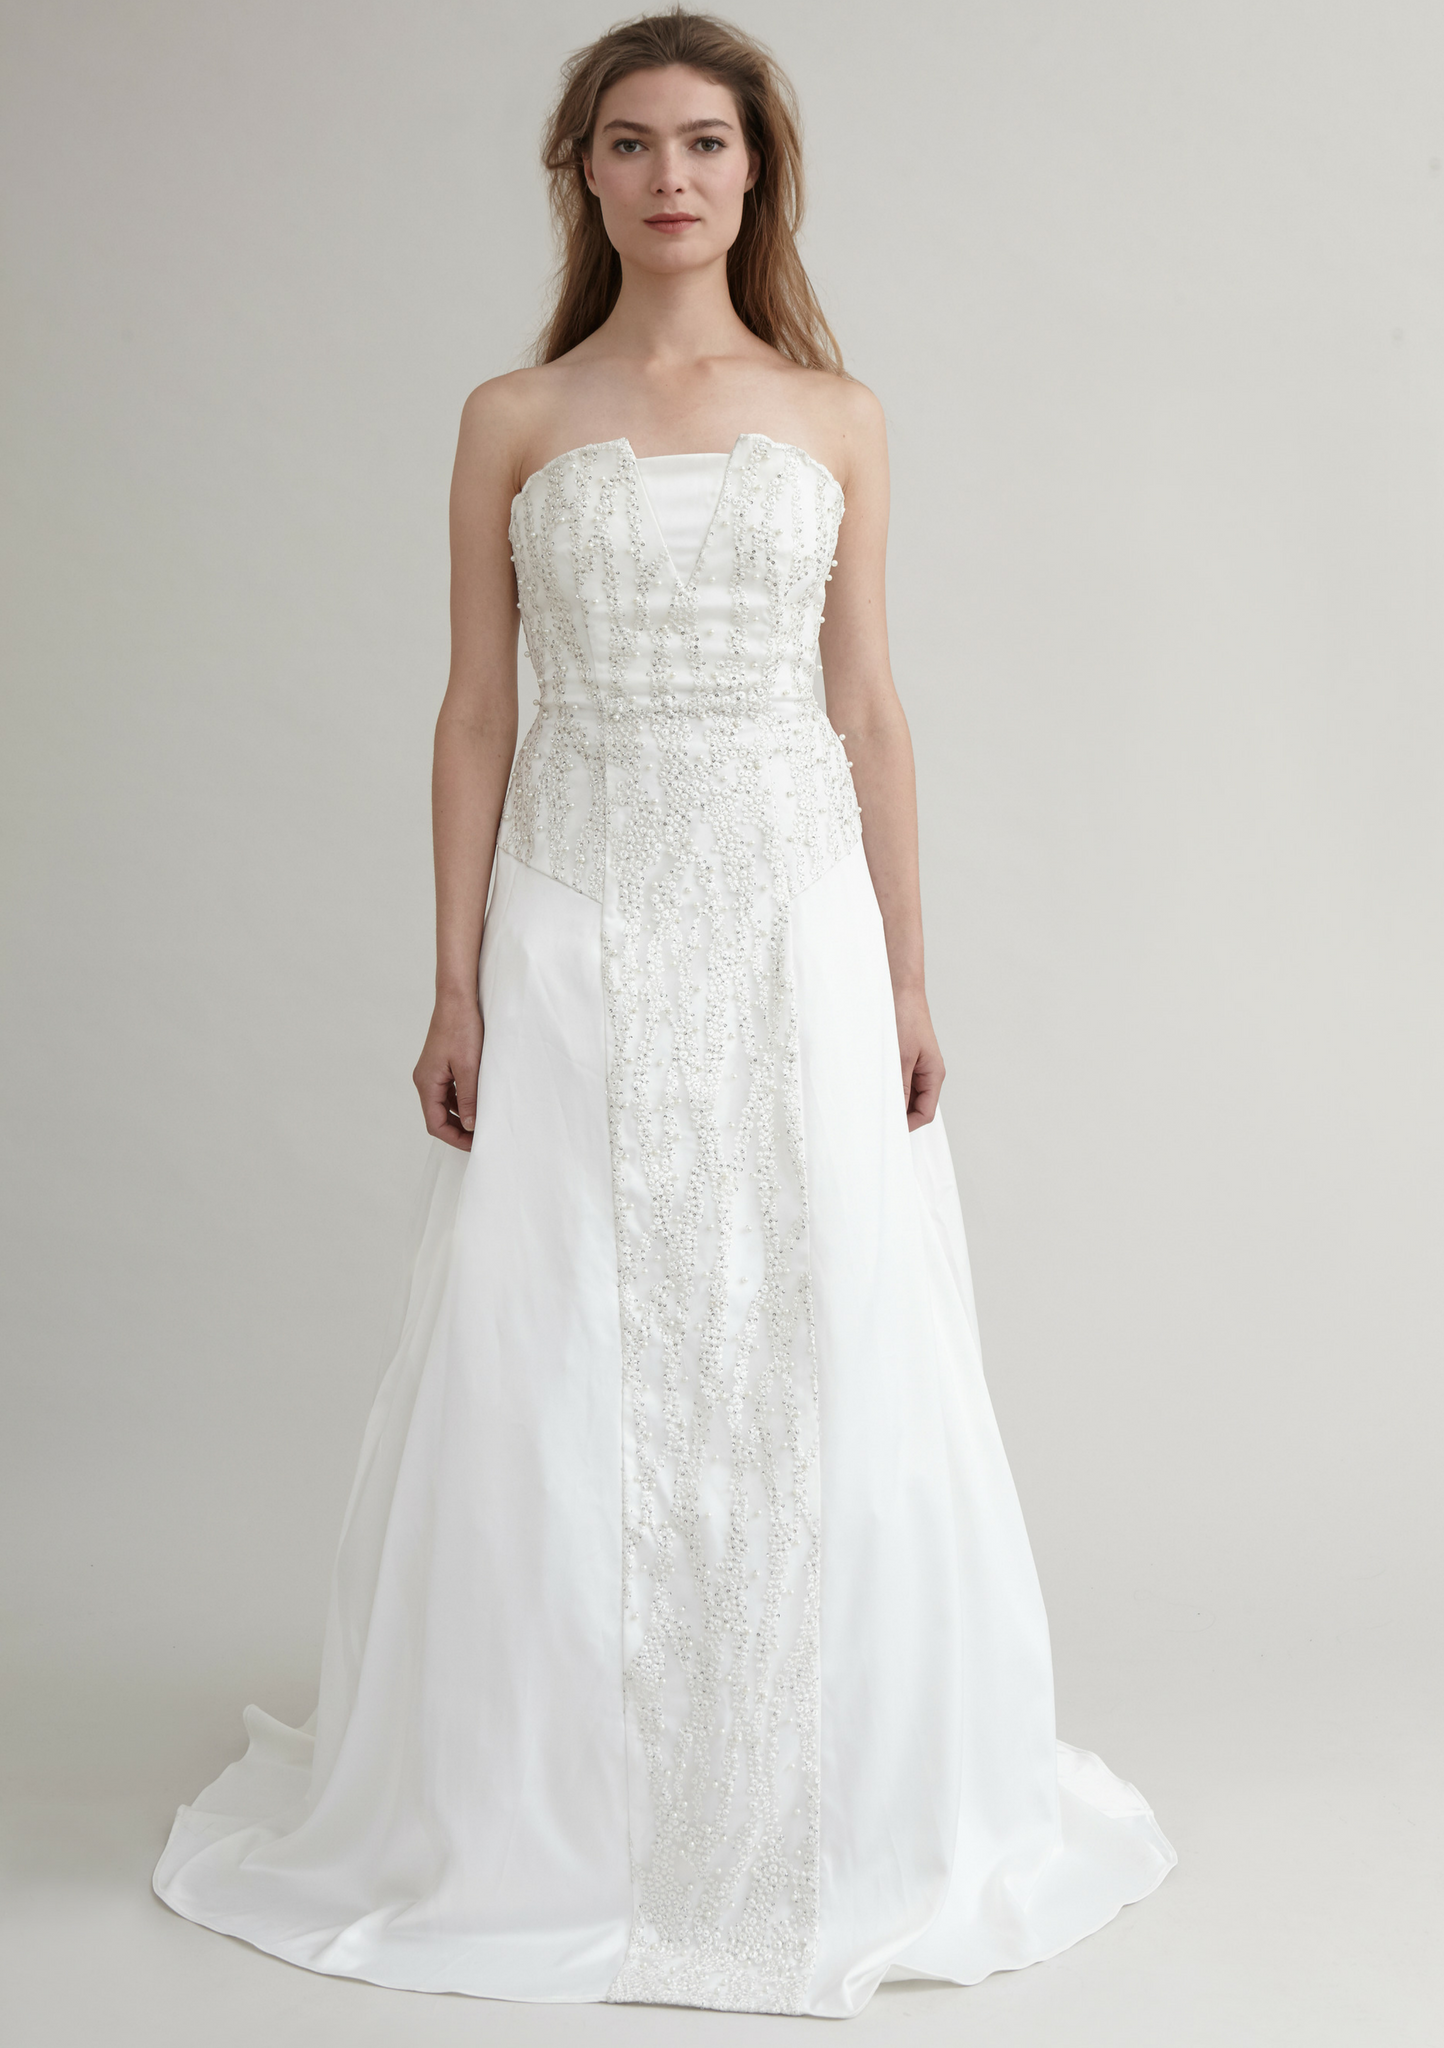 Strapless bridal gown detailed with lace and pearls